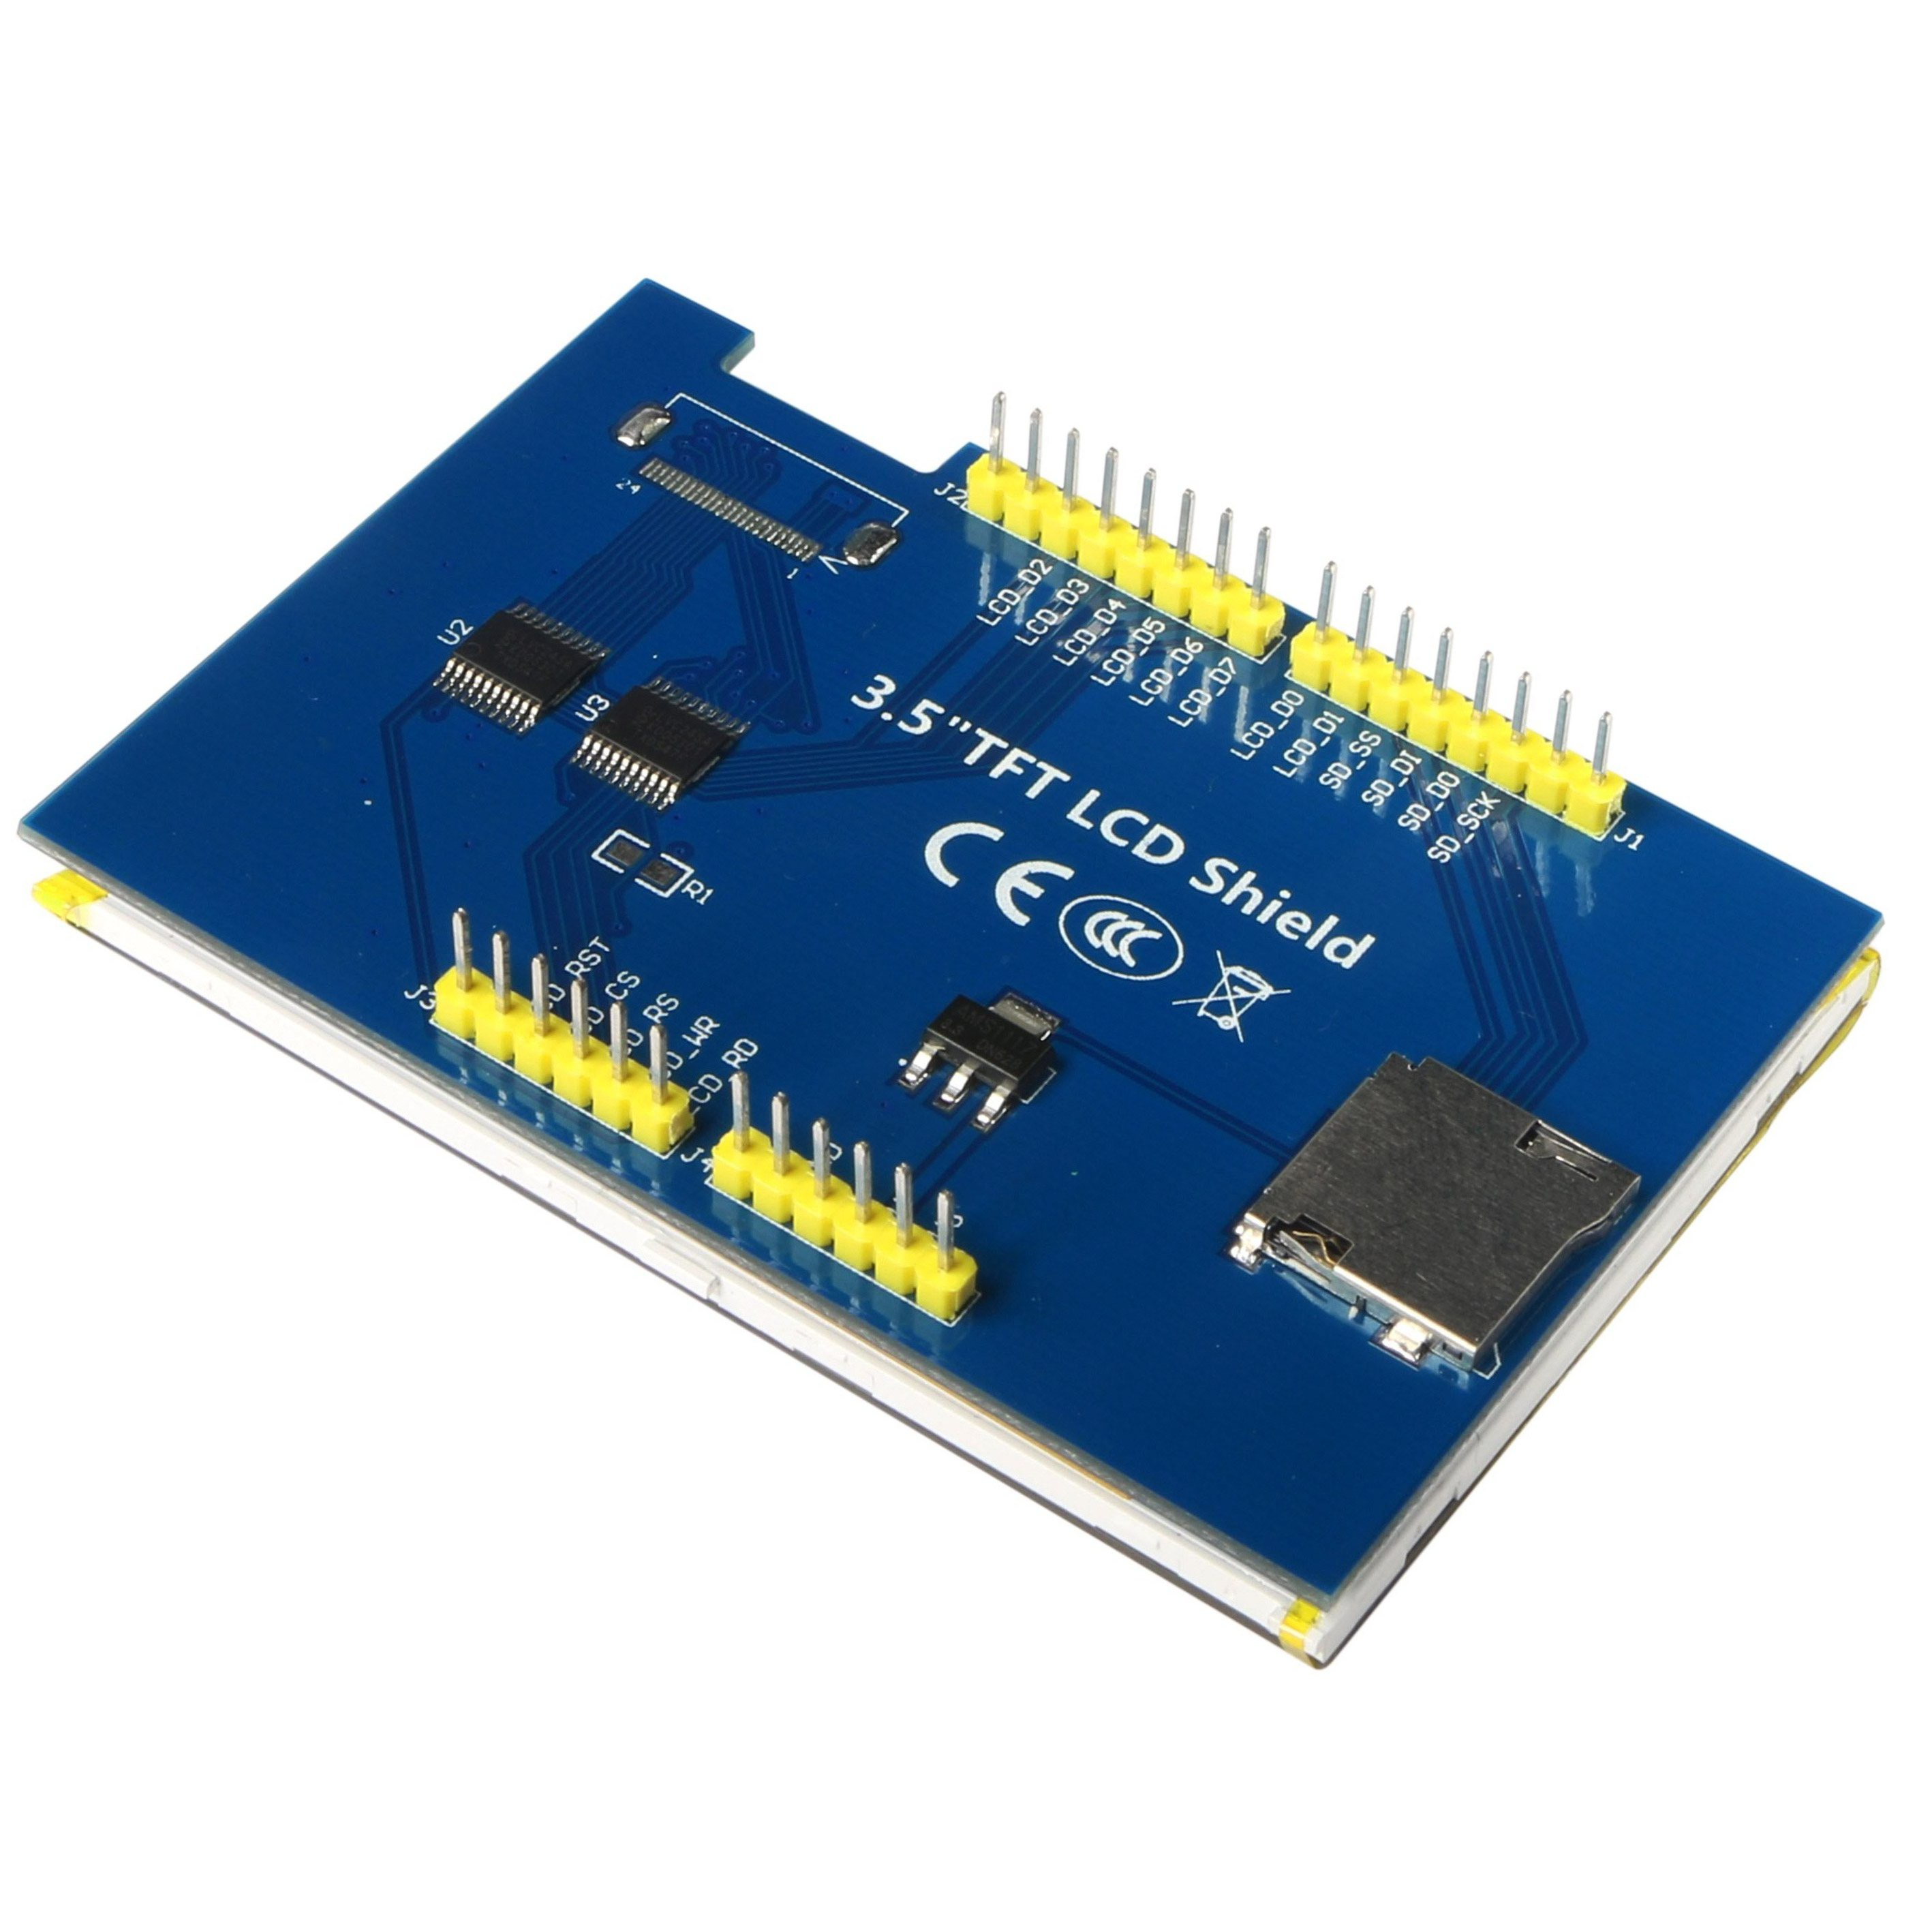 LCD-3.5 Datasheet Arduino Due on 4 serial ports, r3 pinout, no pins, bc847b, usb port, ups lithium, w5100 spi,